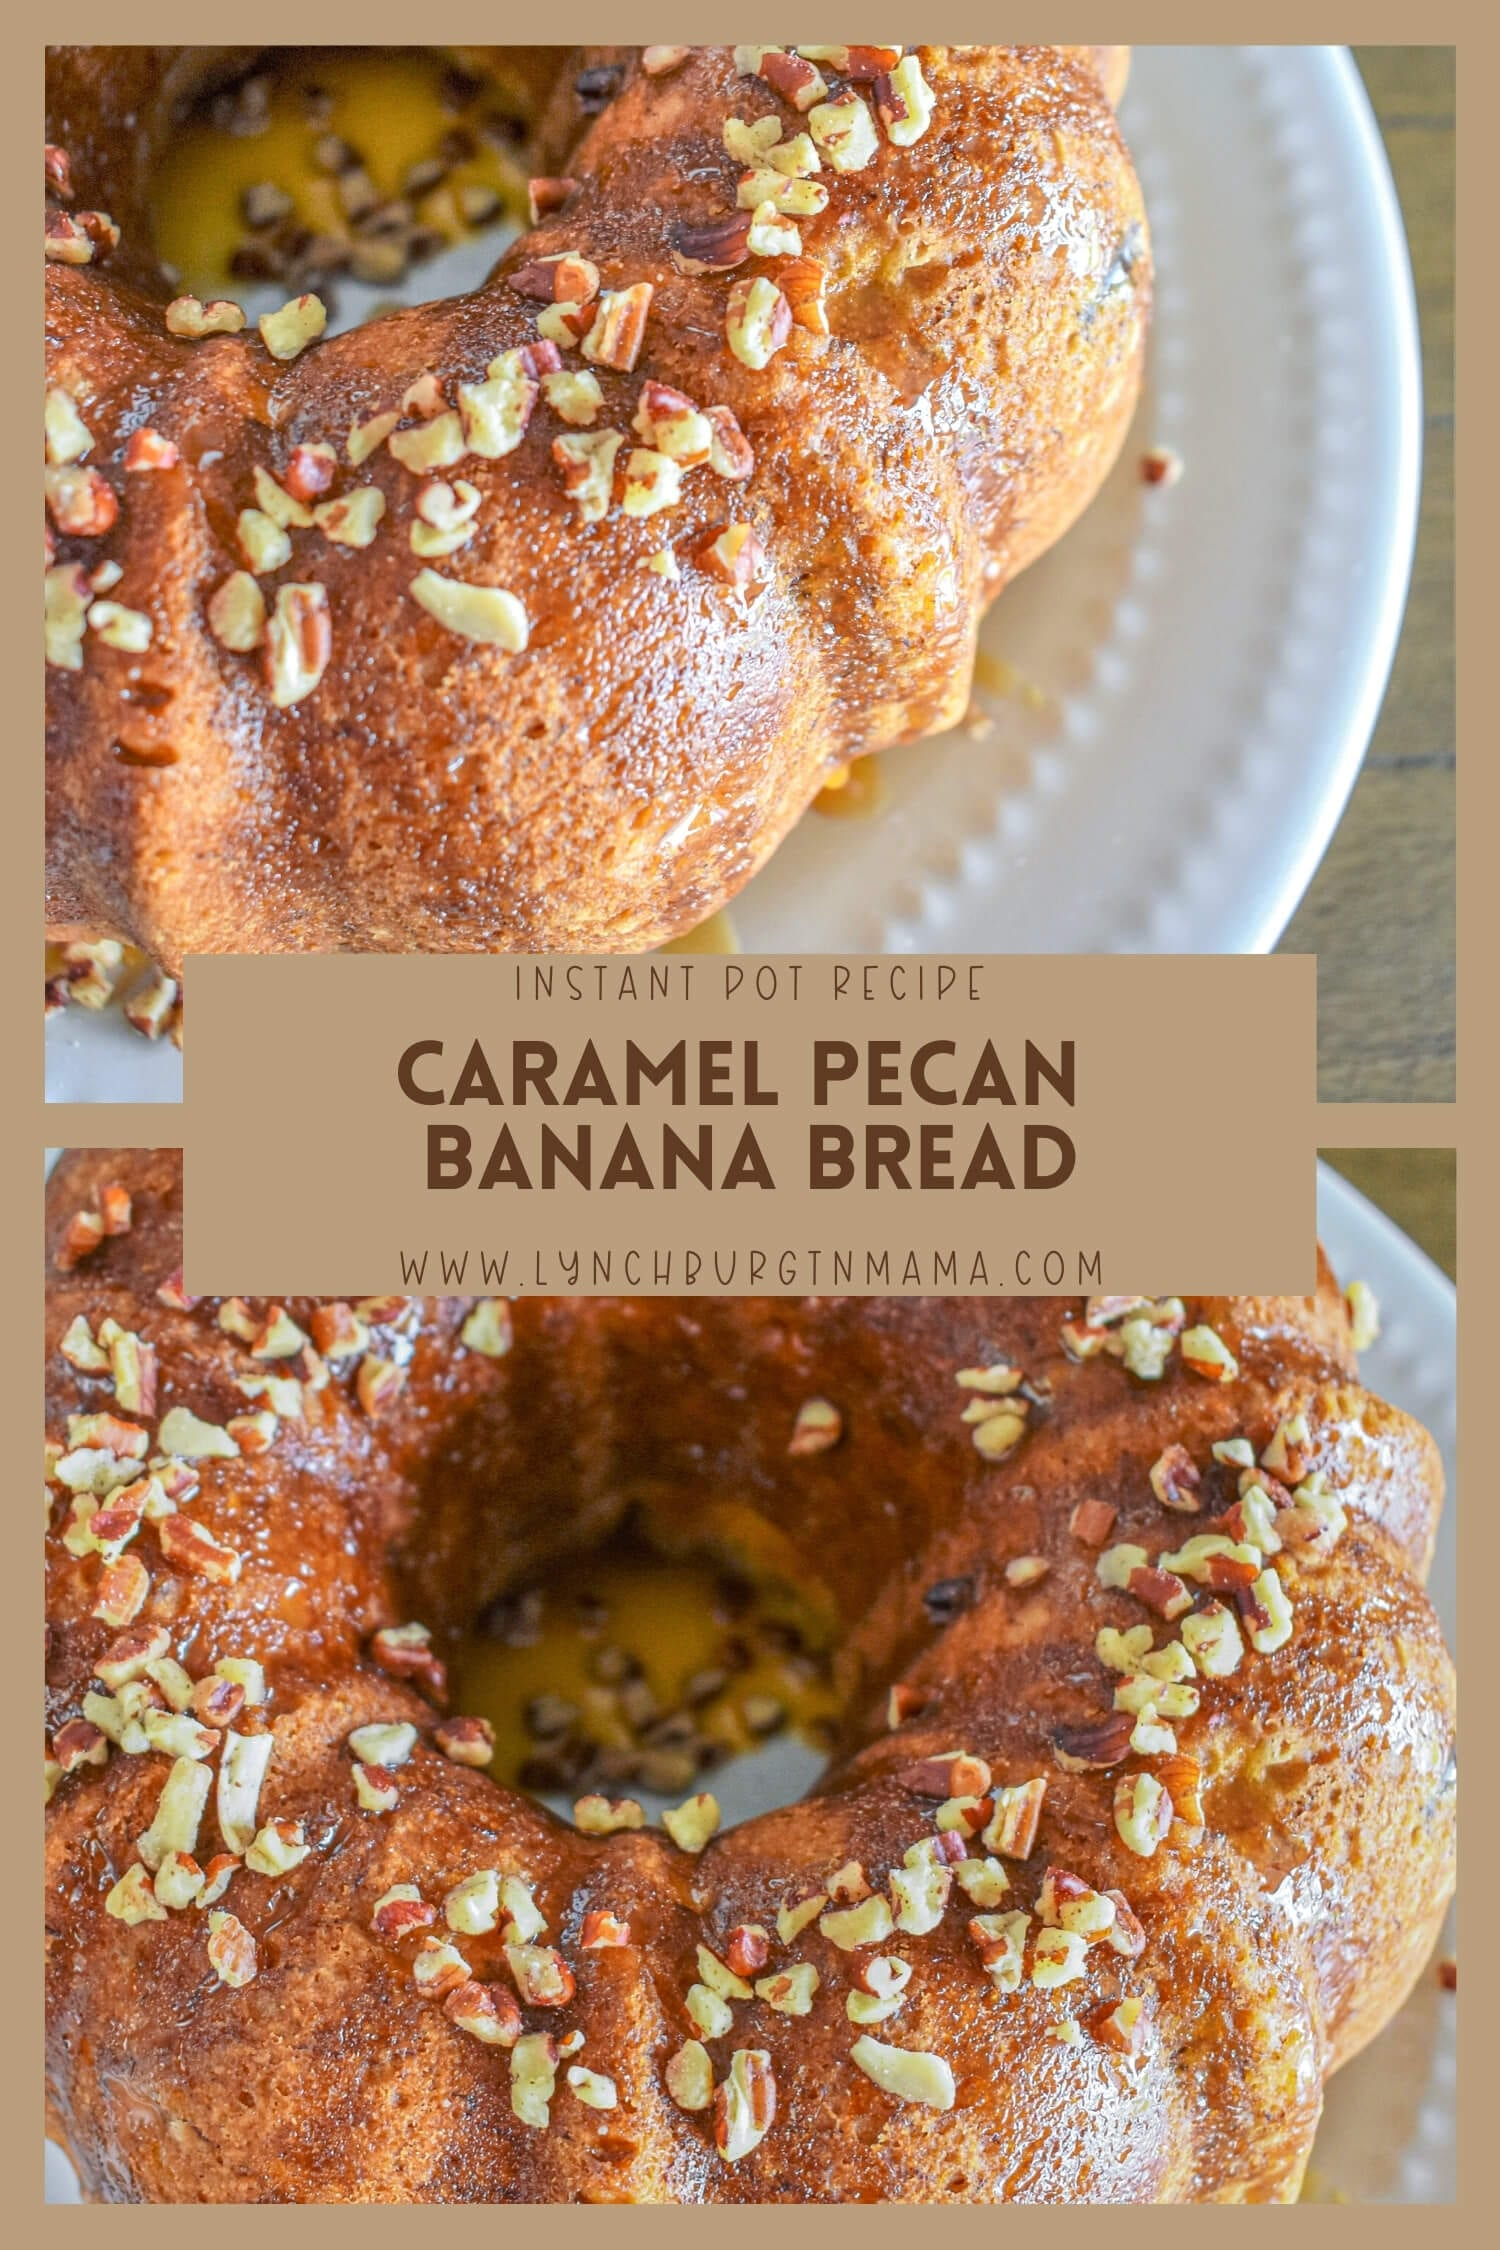 Instant Pot Caramel Pecan Banana Bread is a moist, delicious treat that will change your baking game! Enjoy for breakfast or as a dessert.